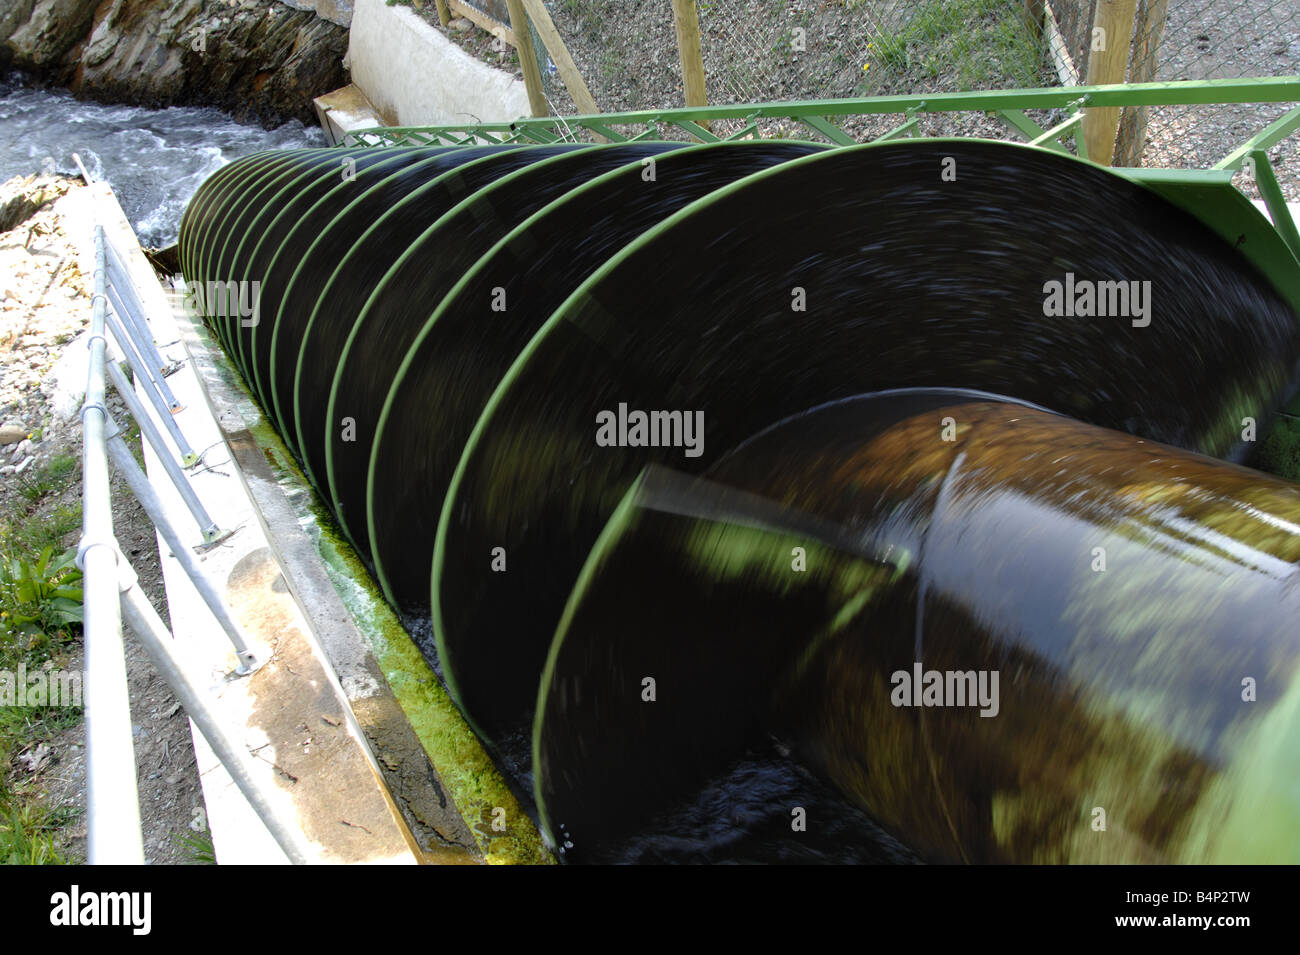 Archemedies Screw Hydro Power station at Dart Valley Courntry Park South Devon England - Stock Image